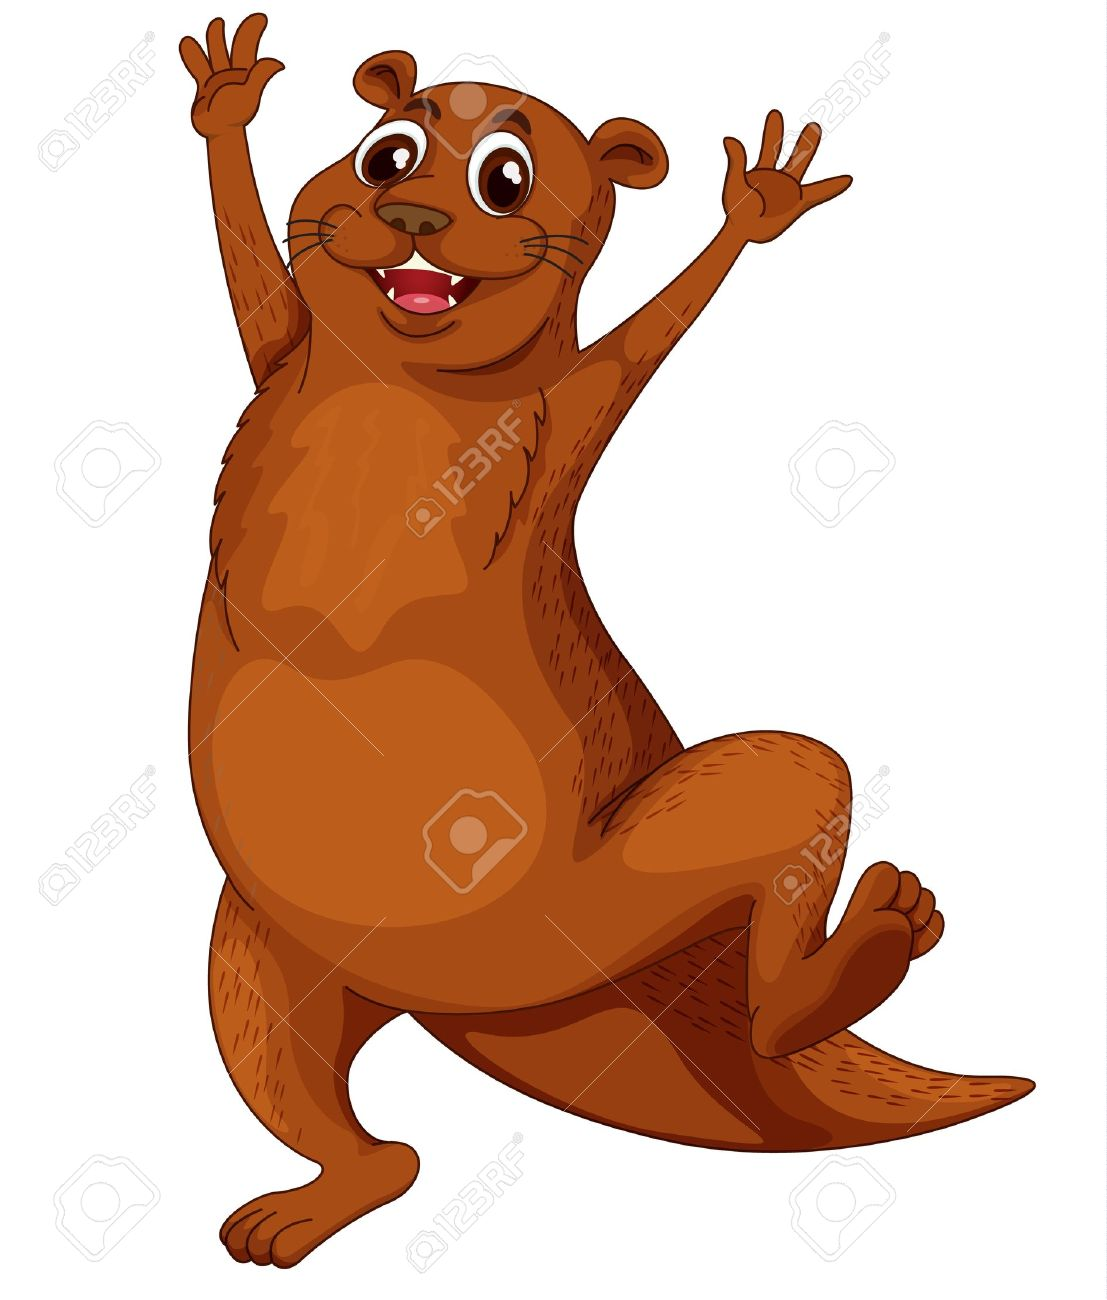 Nutria clipart #2, Download drawings